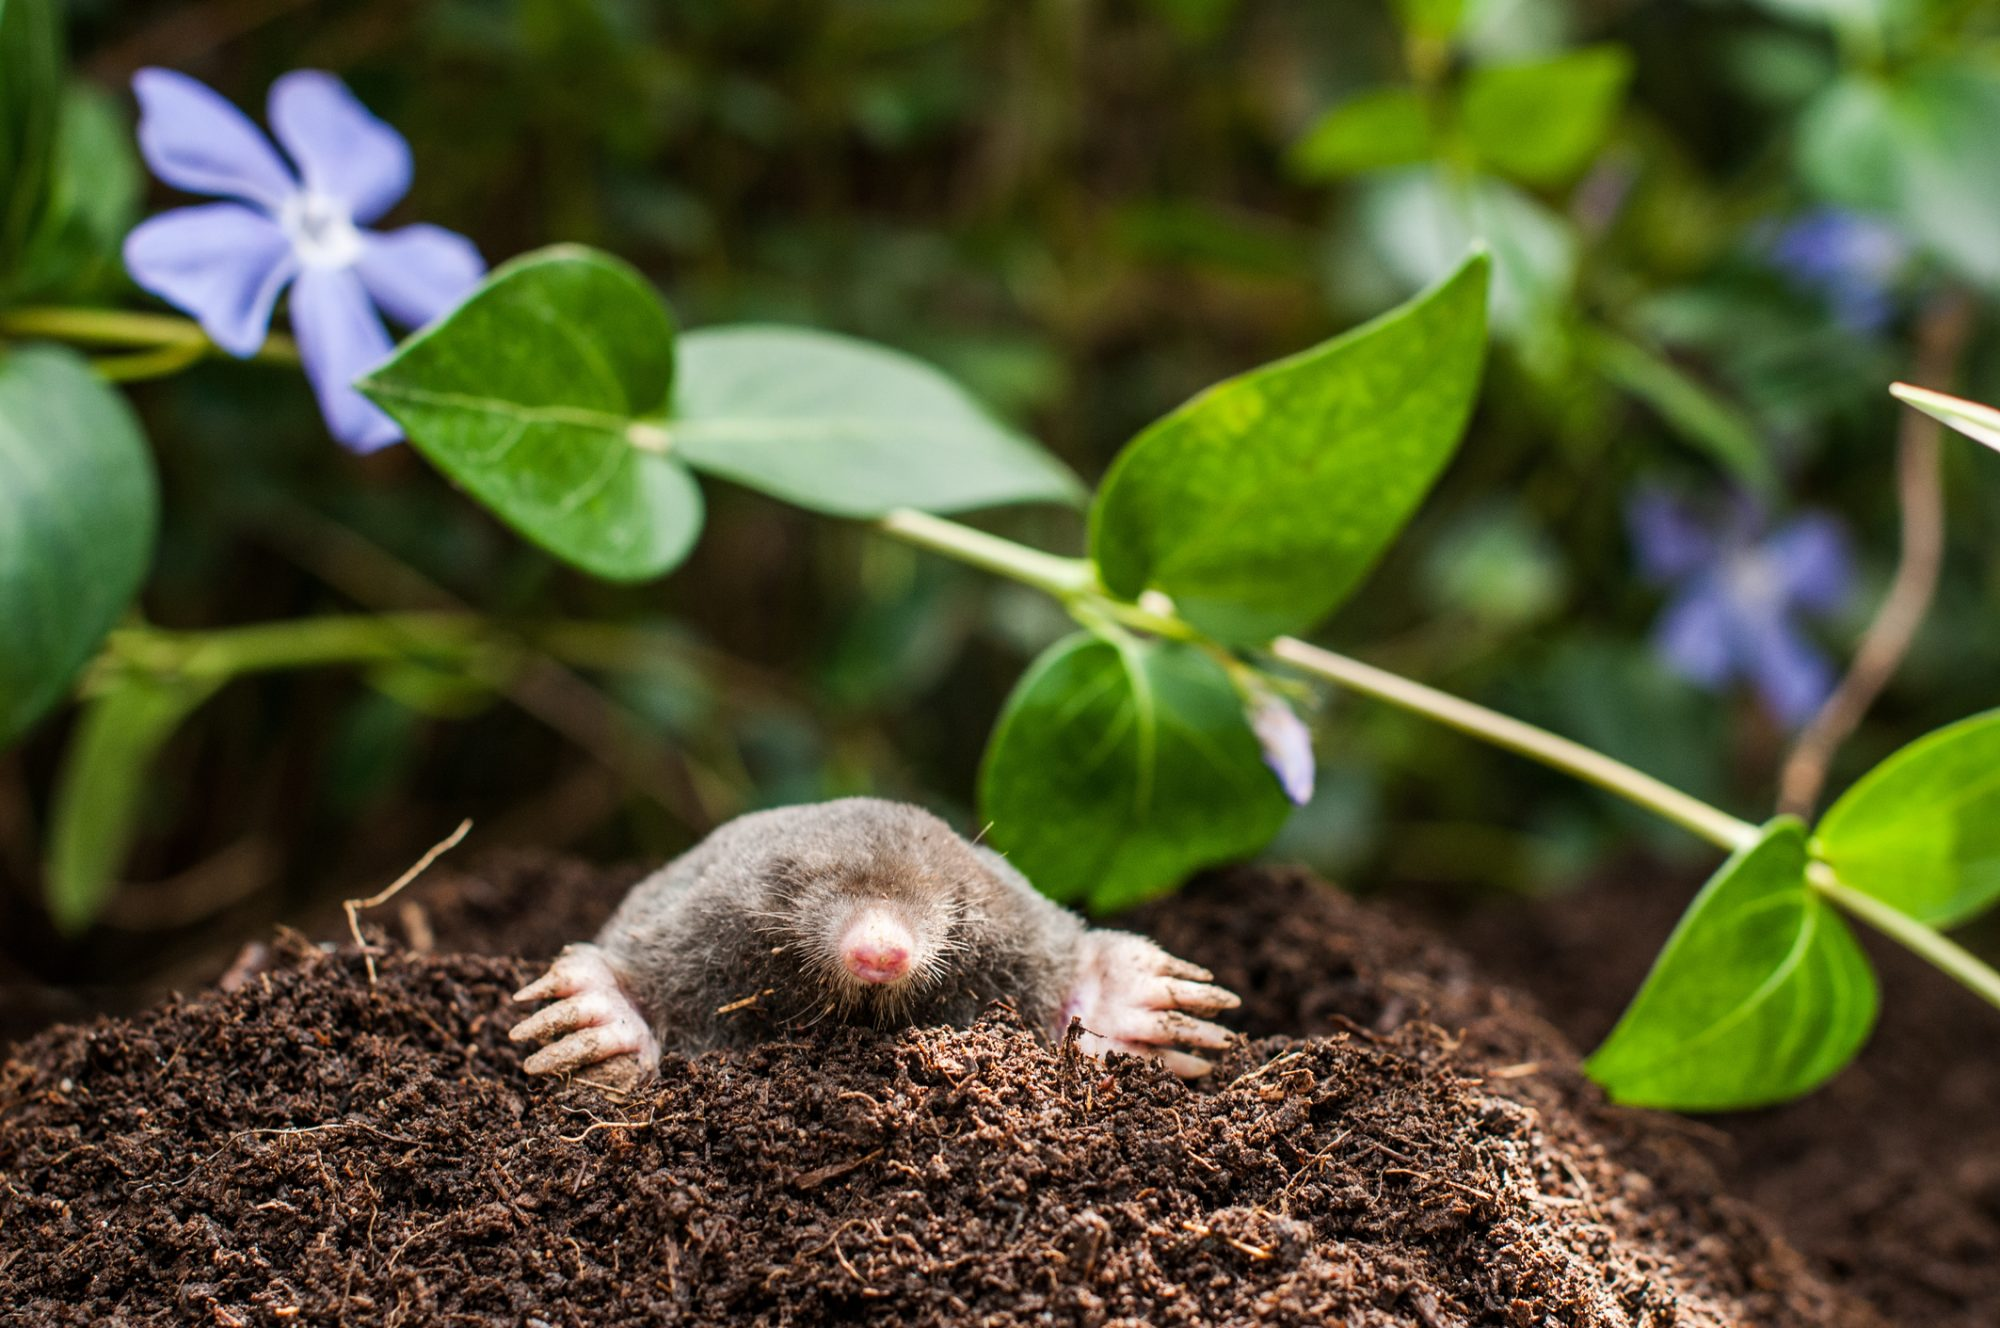 How To Get Rid of Moles - Southern Living